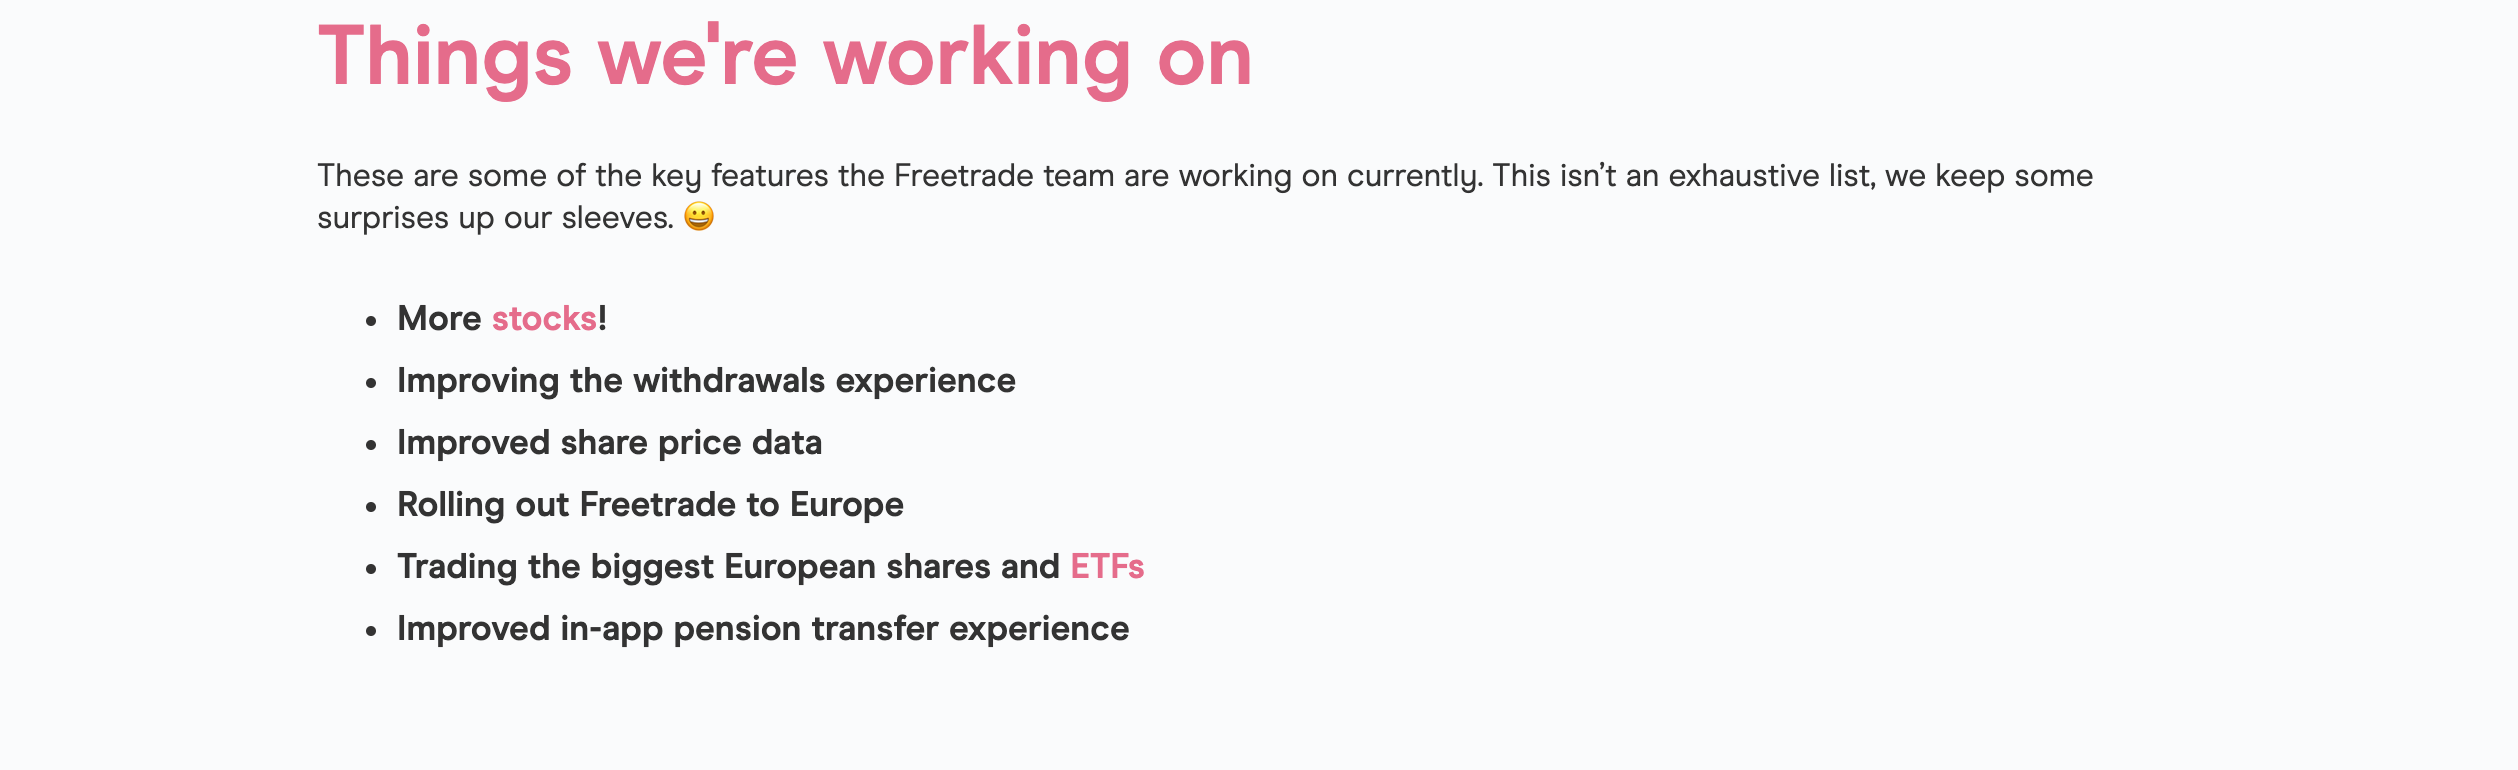 """We love the """"things we're working on"""" section of the Freetrade website. We like how transparent and open this company is when it comes to their growth goals. Image from freetrade.io"""